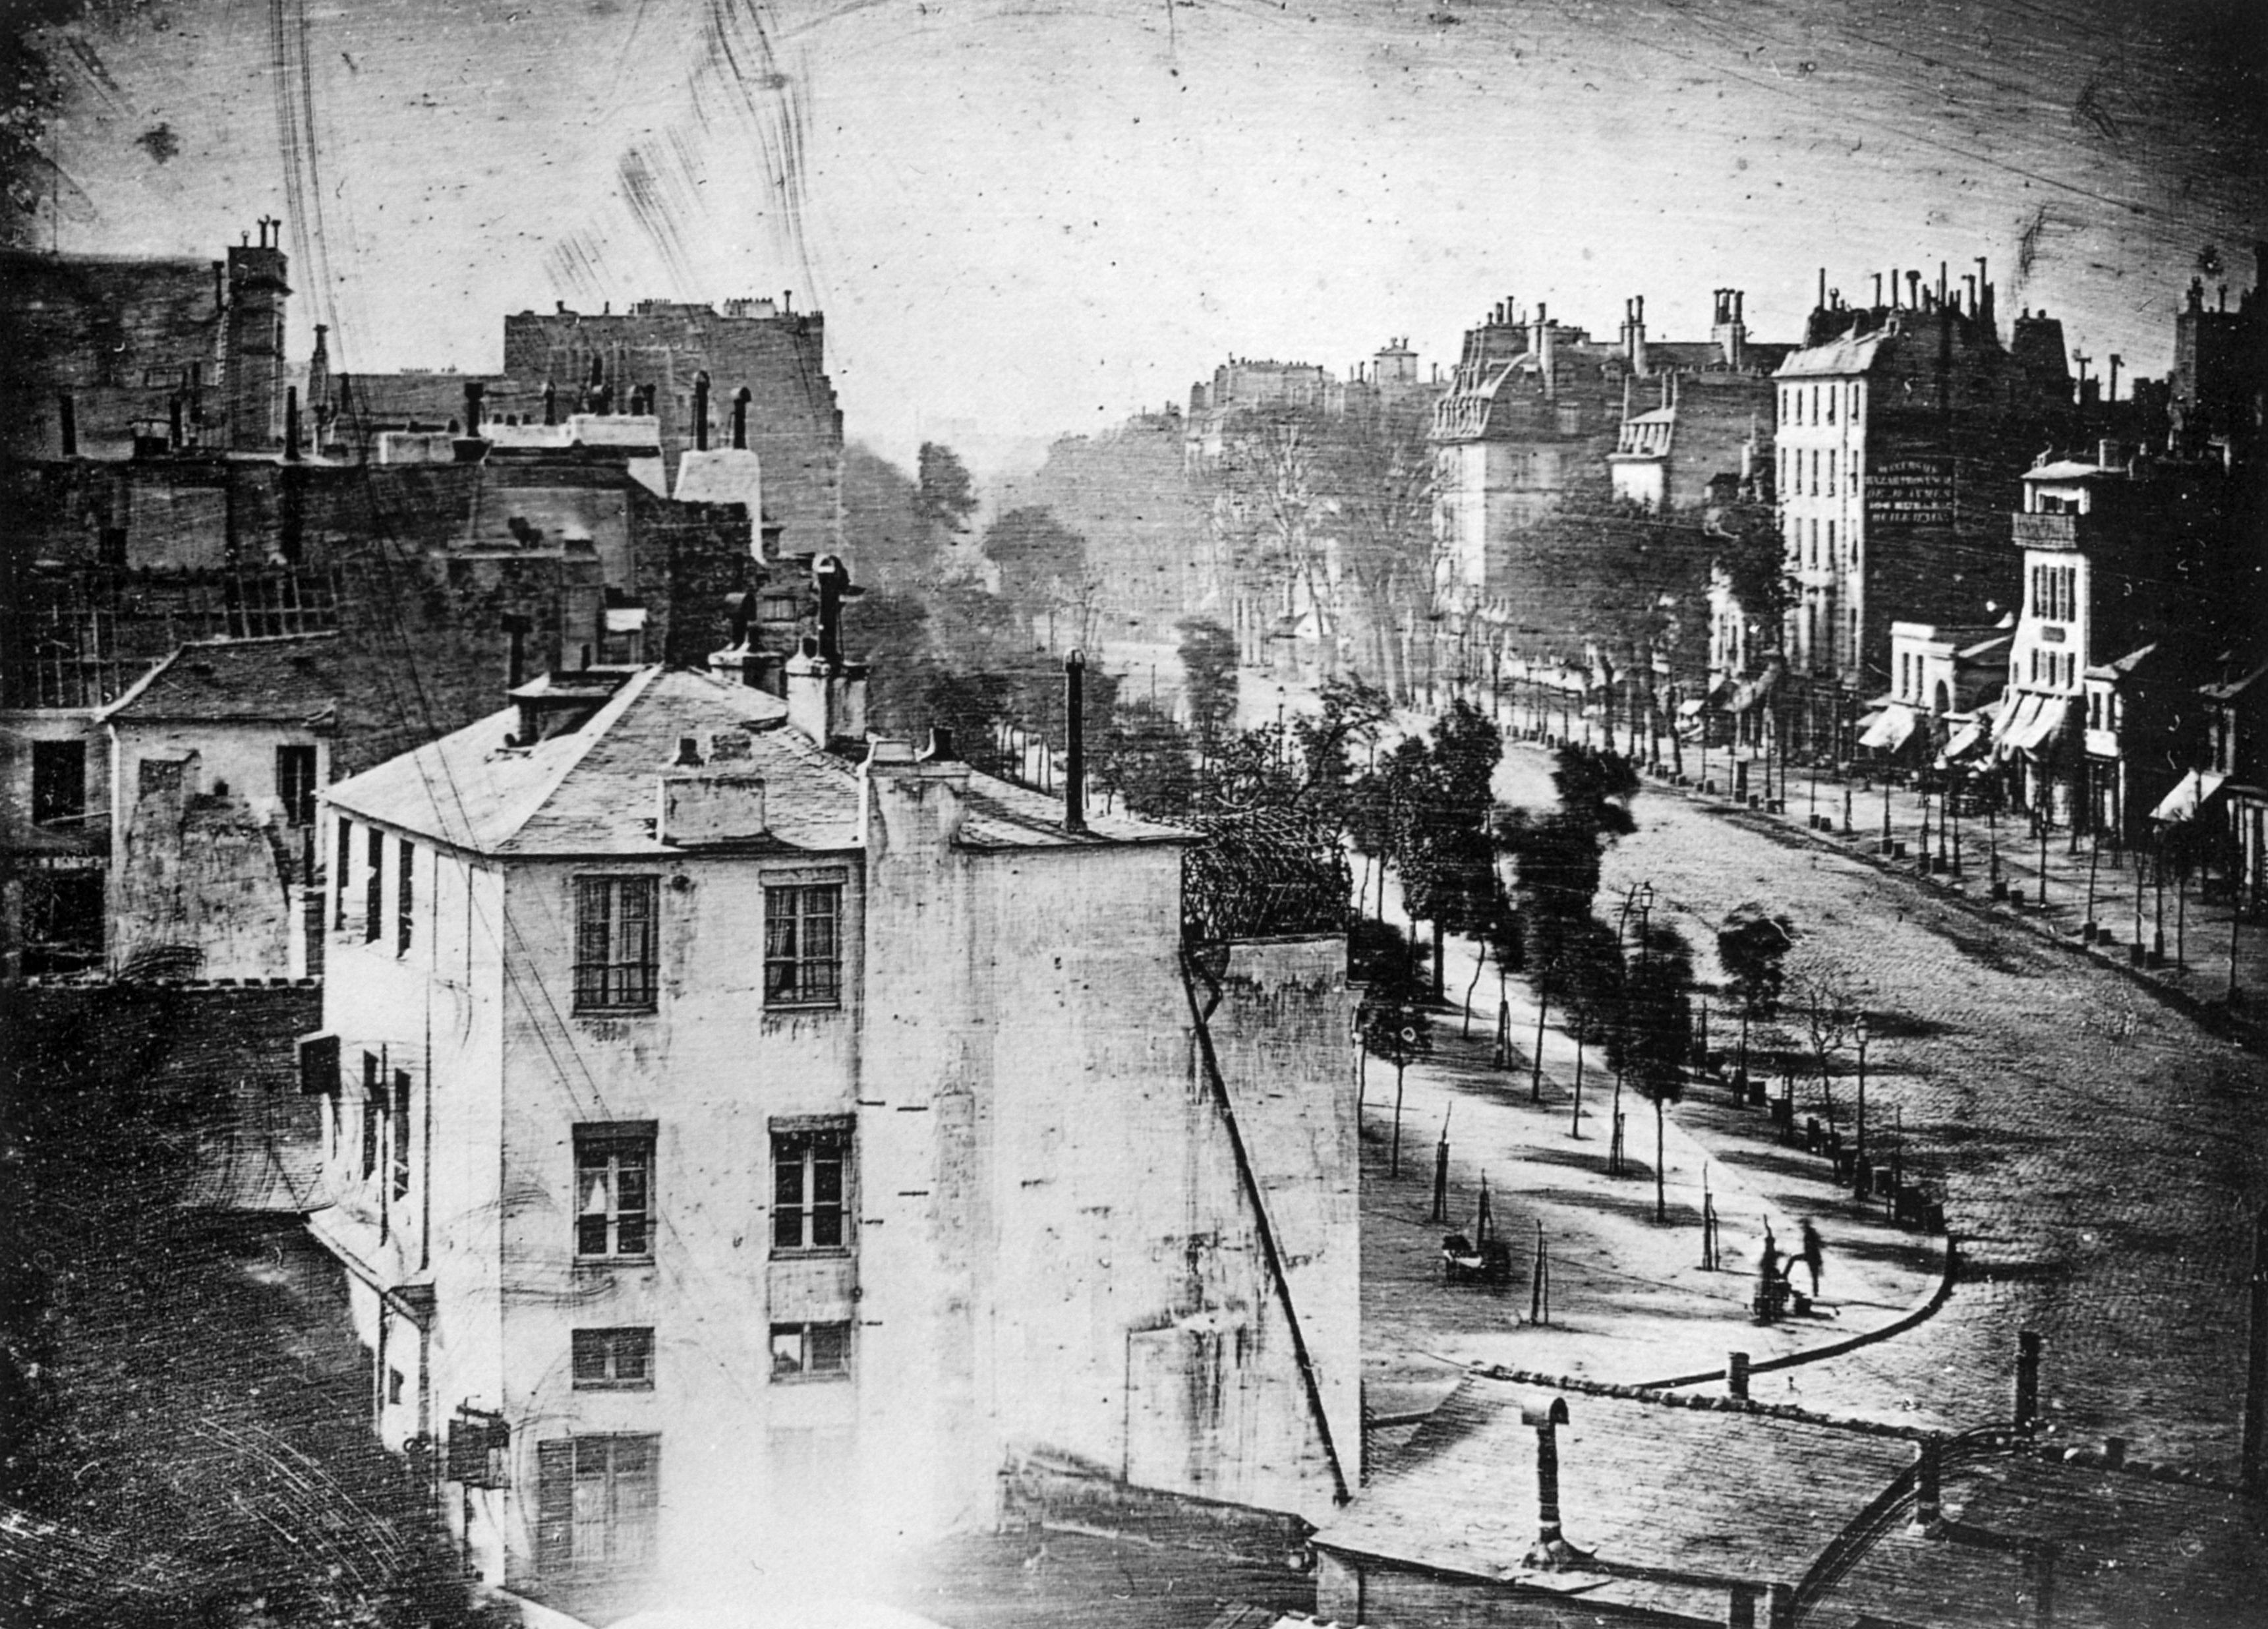 I believe this is the first photograph ever taken. It is a ...